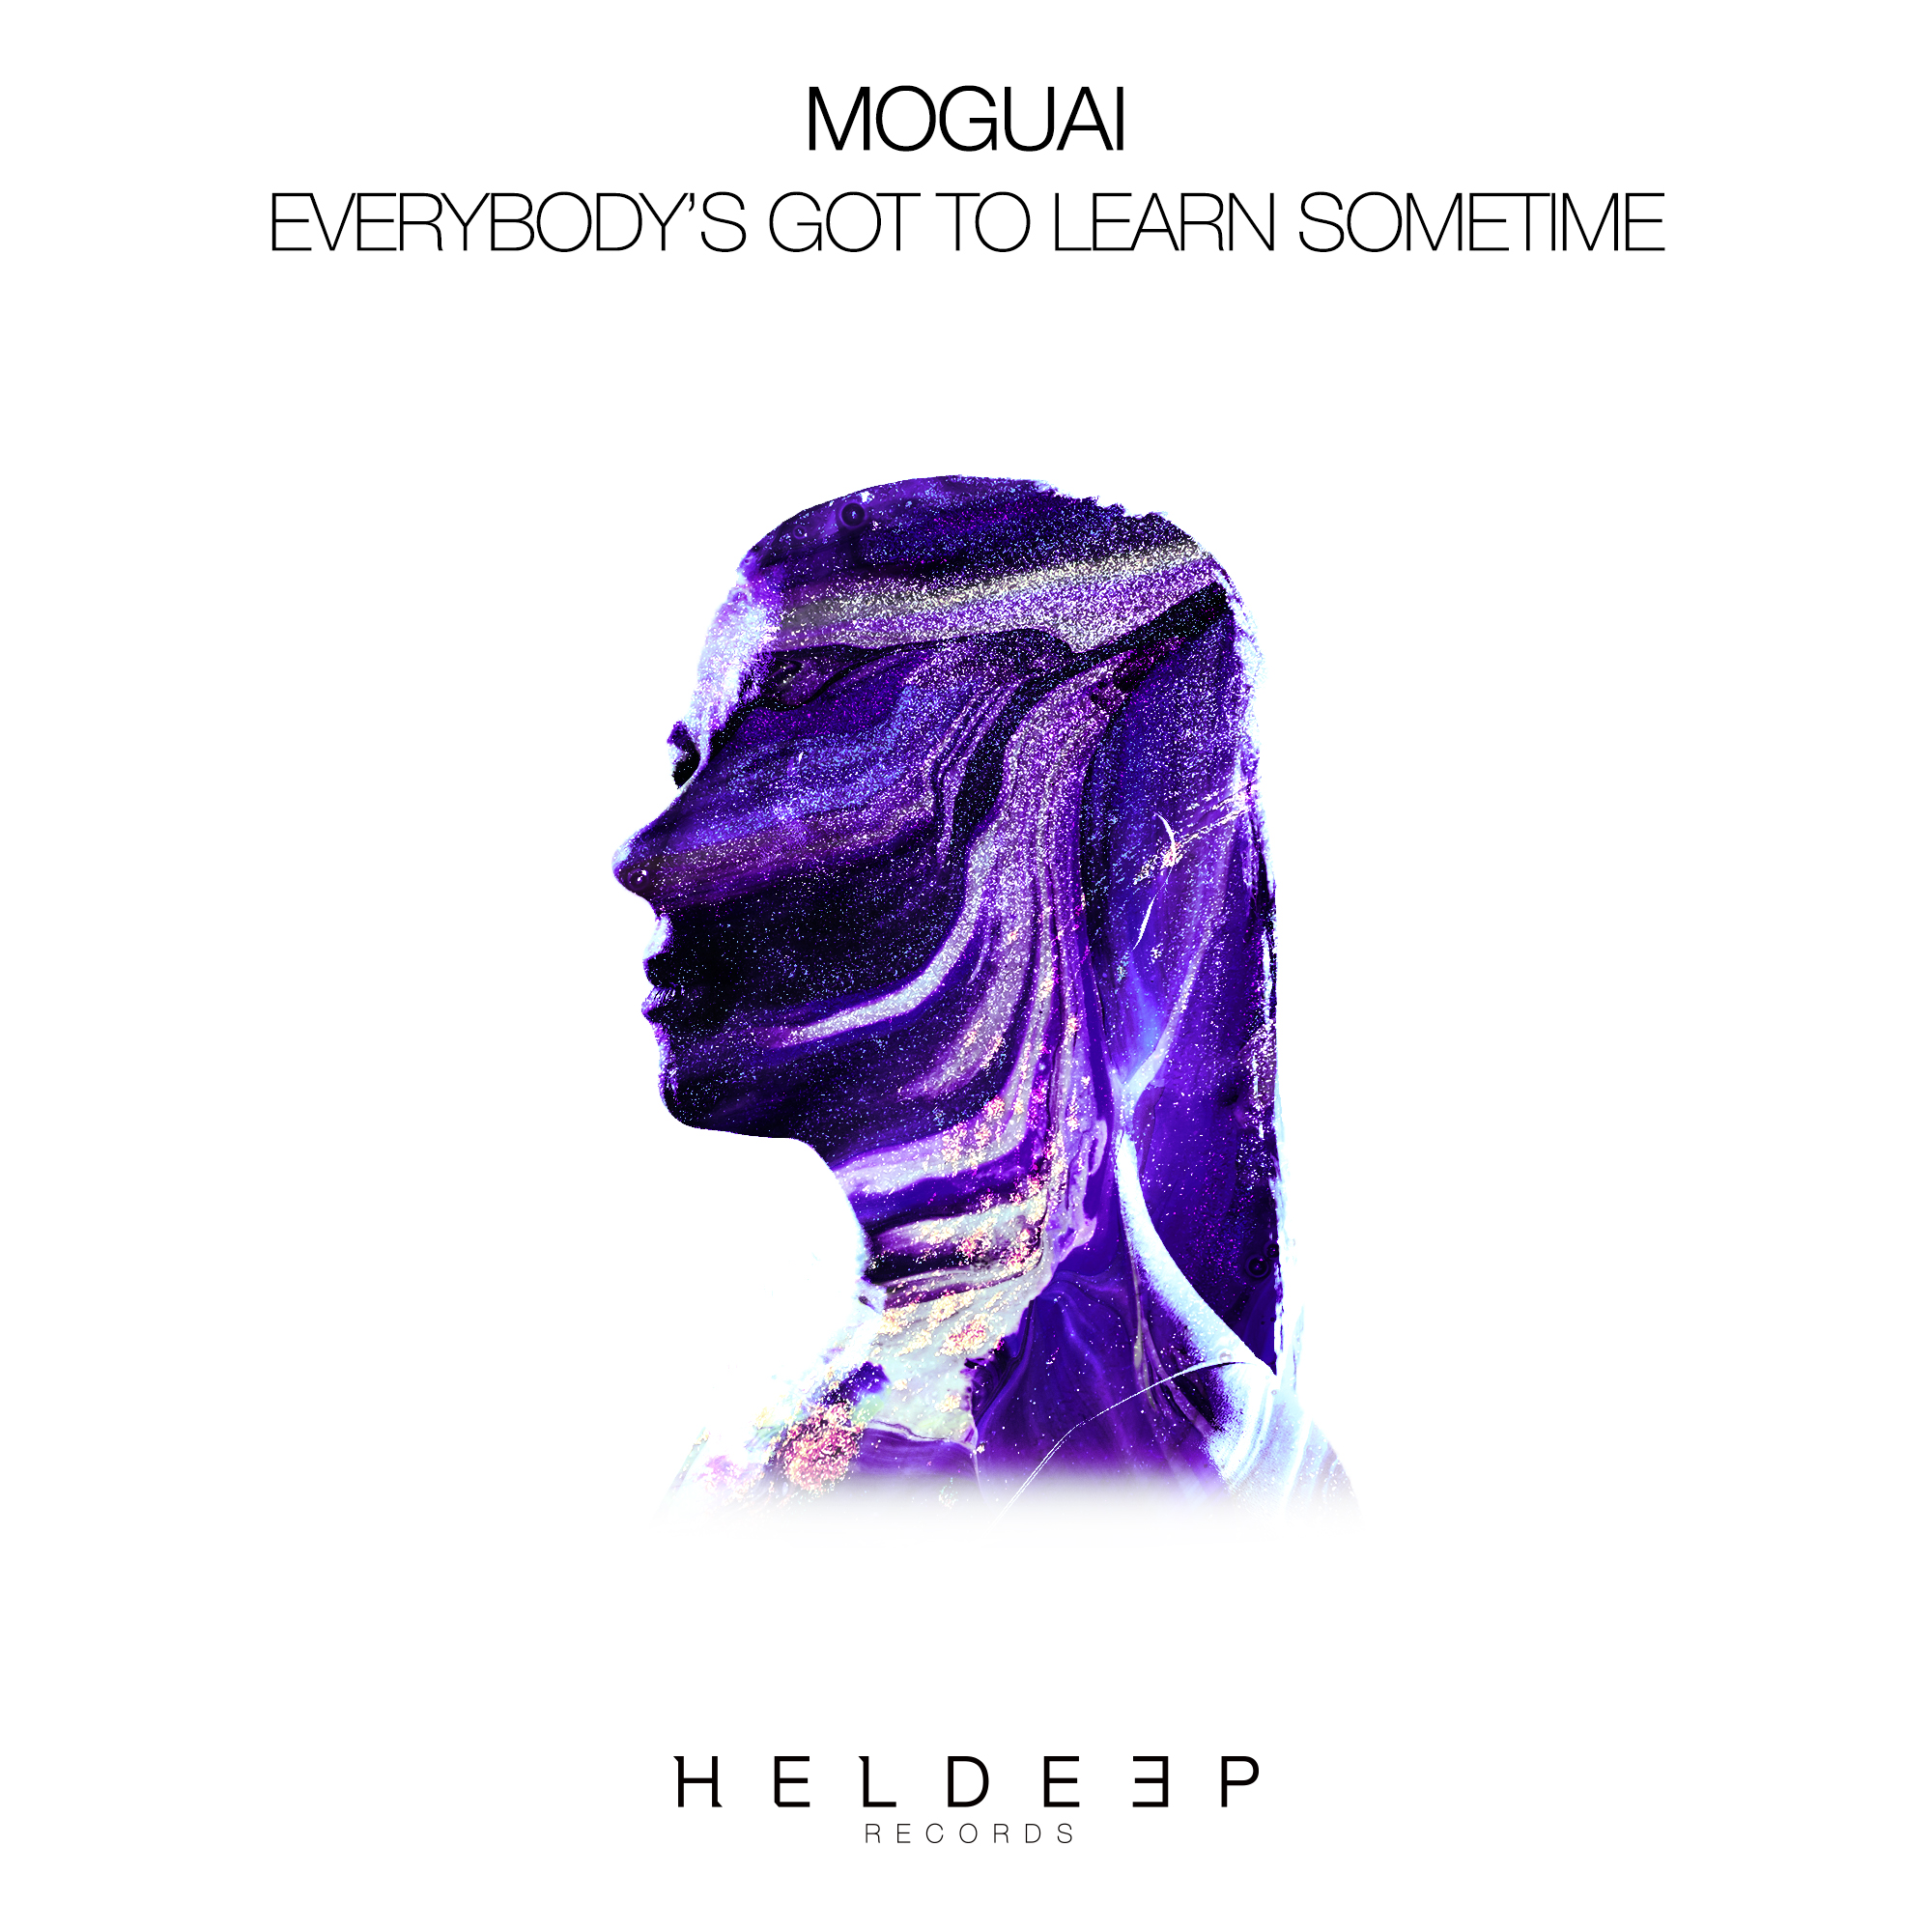 MOGUAI - Everybody's Got To Lean Sometime